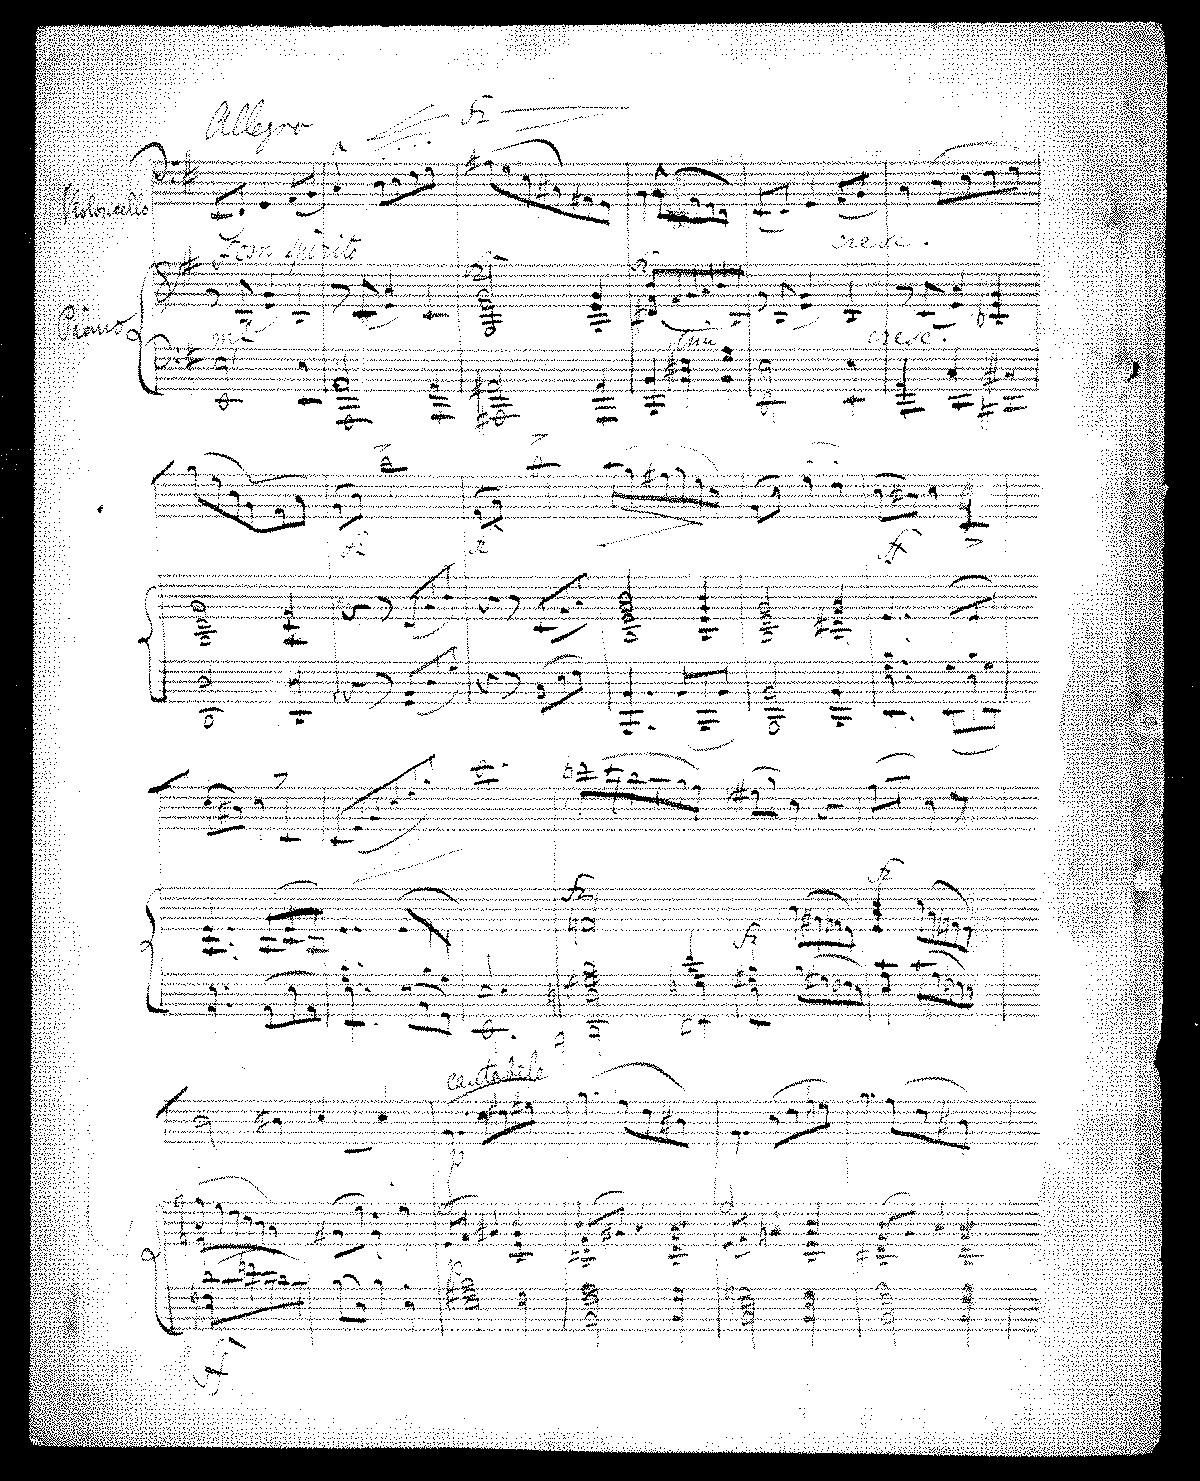 PMLP593378-FPraeger Allegro in E minor for Cello and Piano incscore.pdf